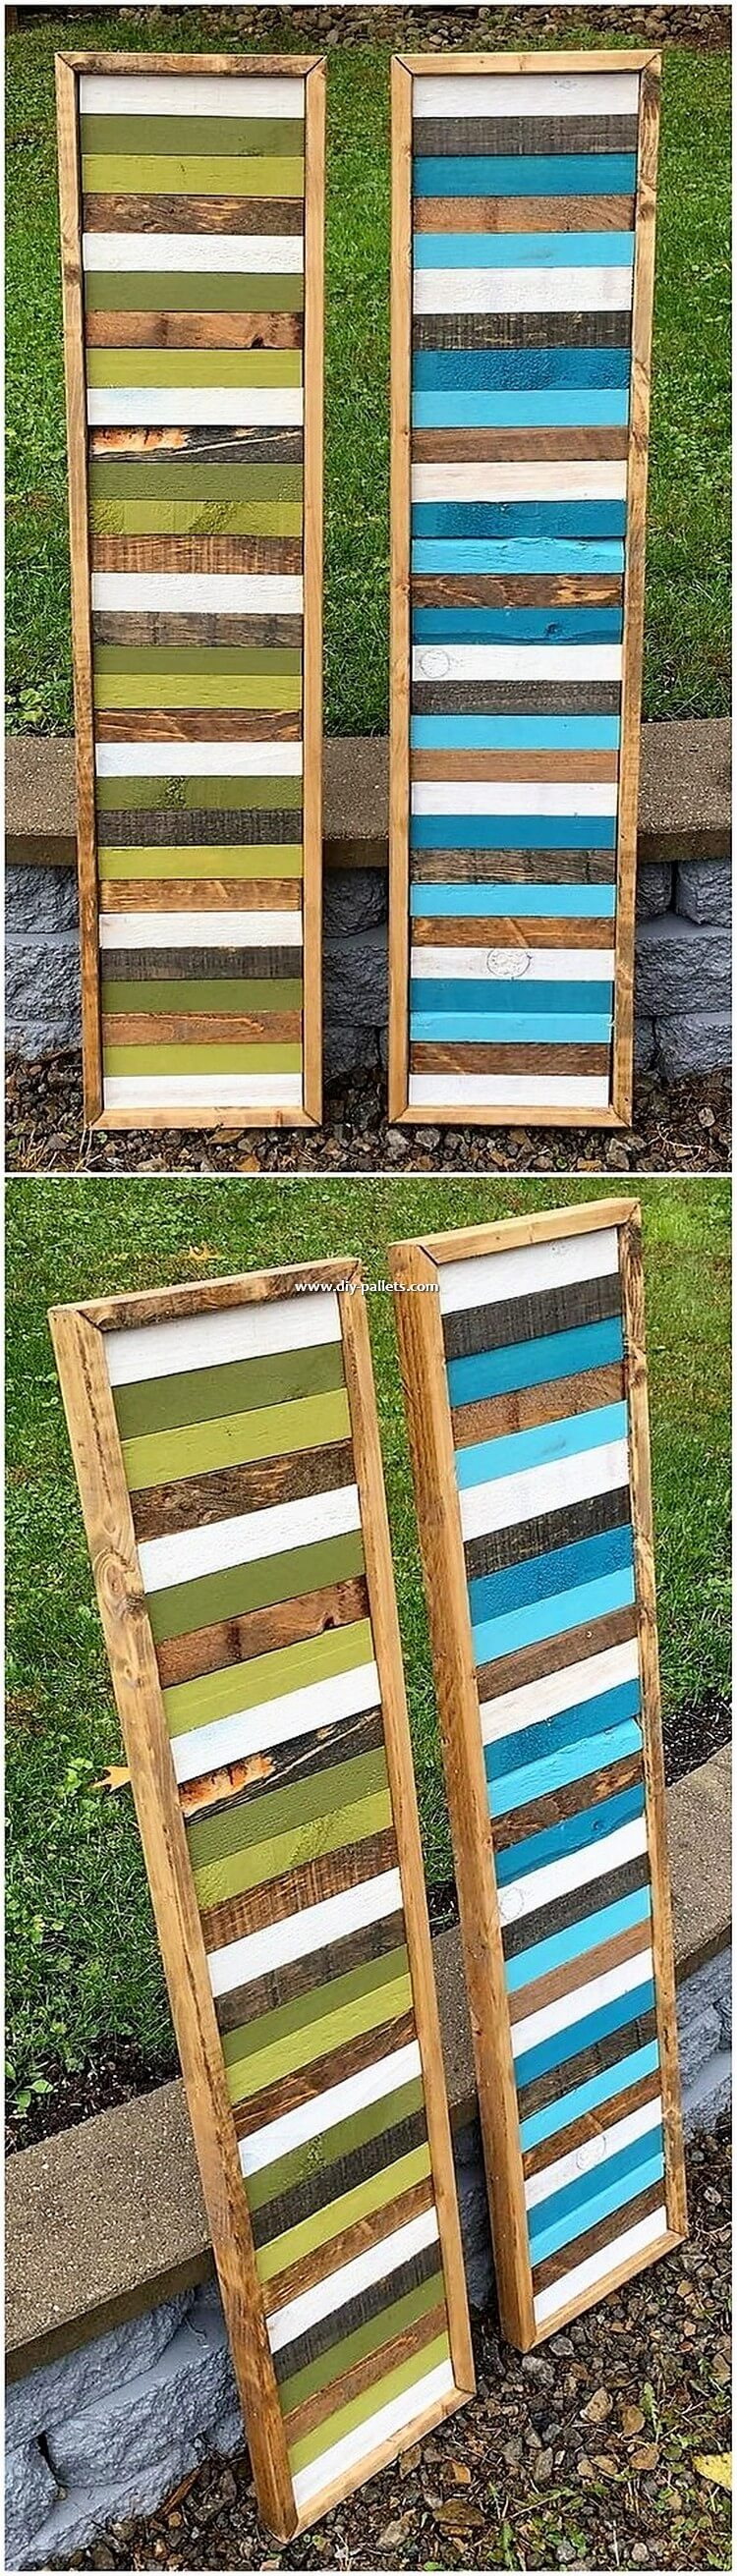 Pallet Wood Creation